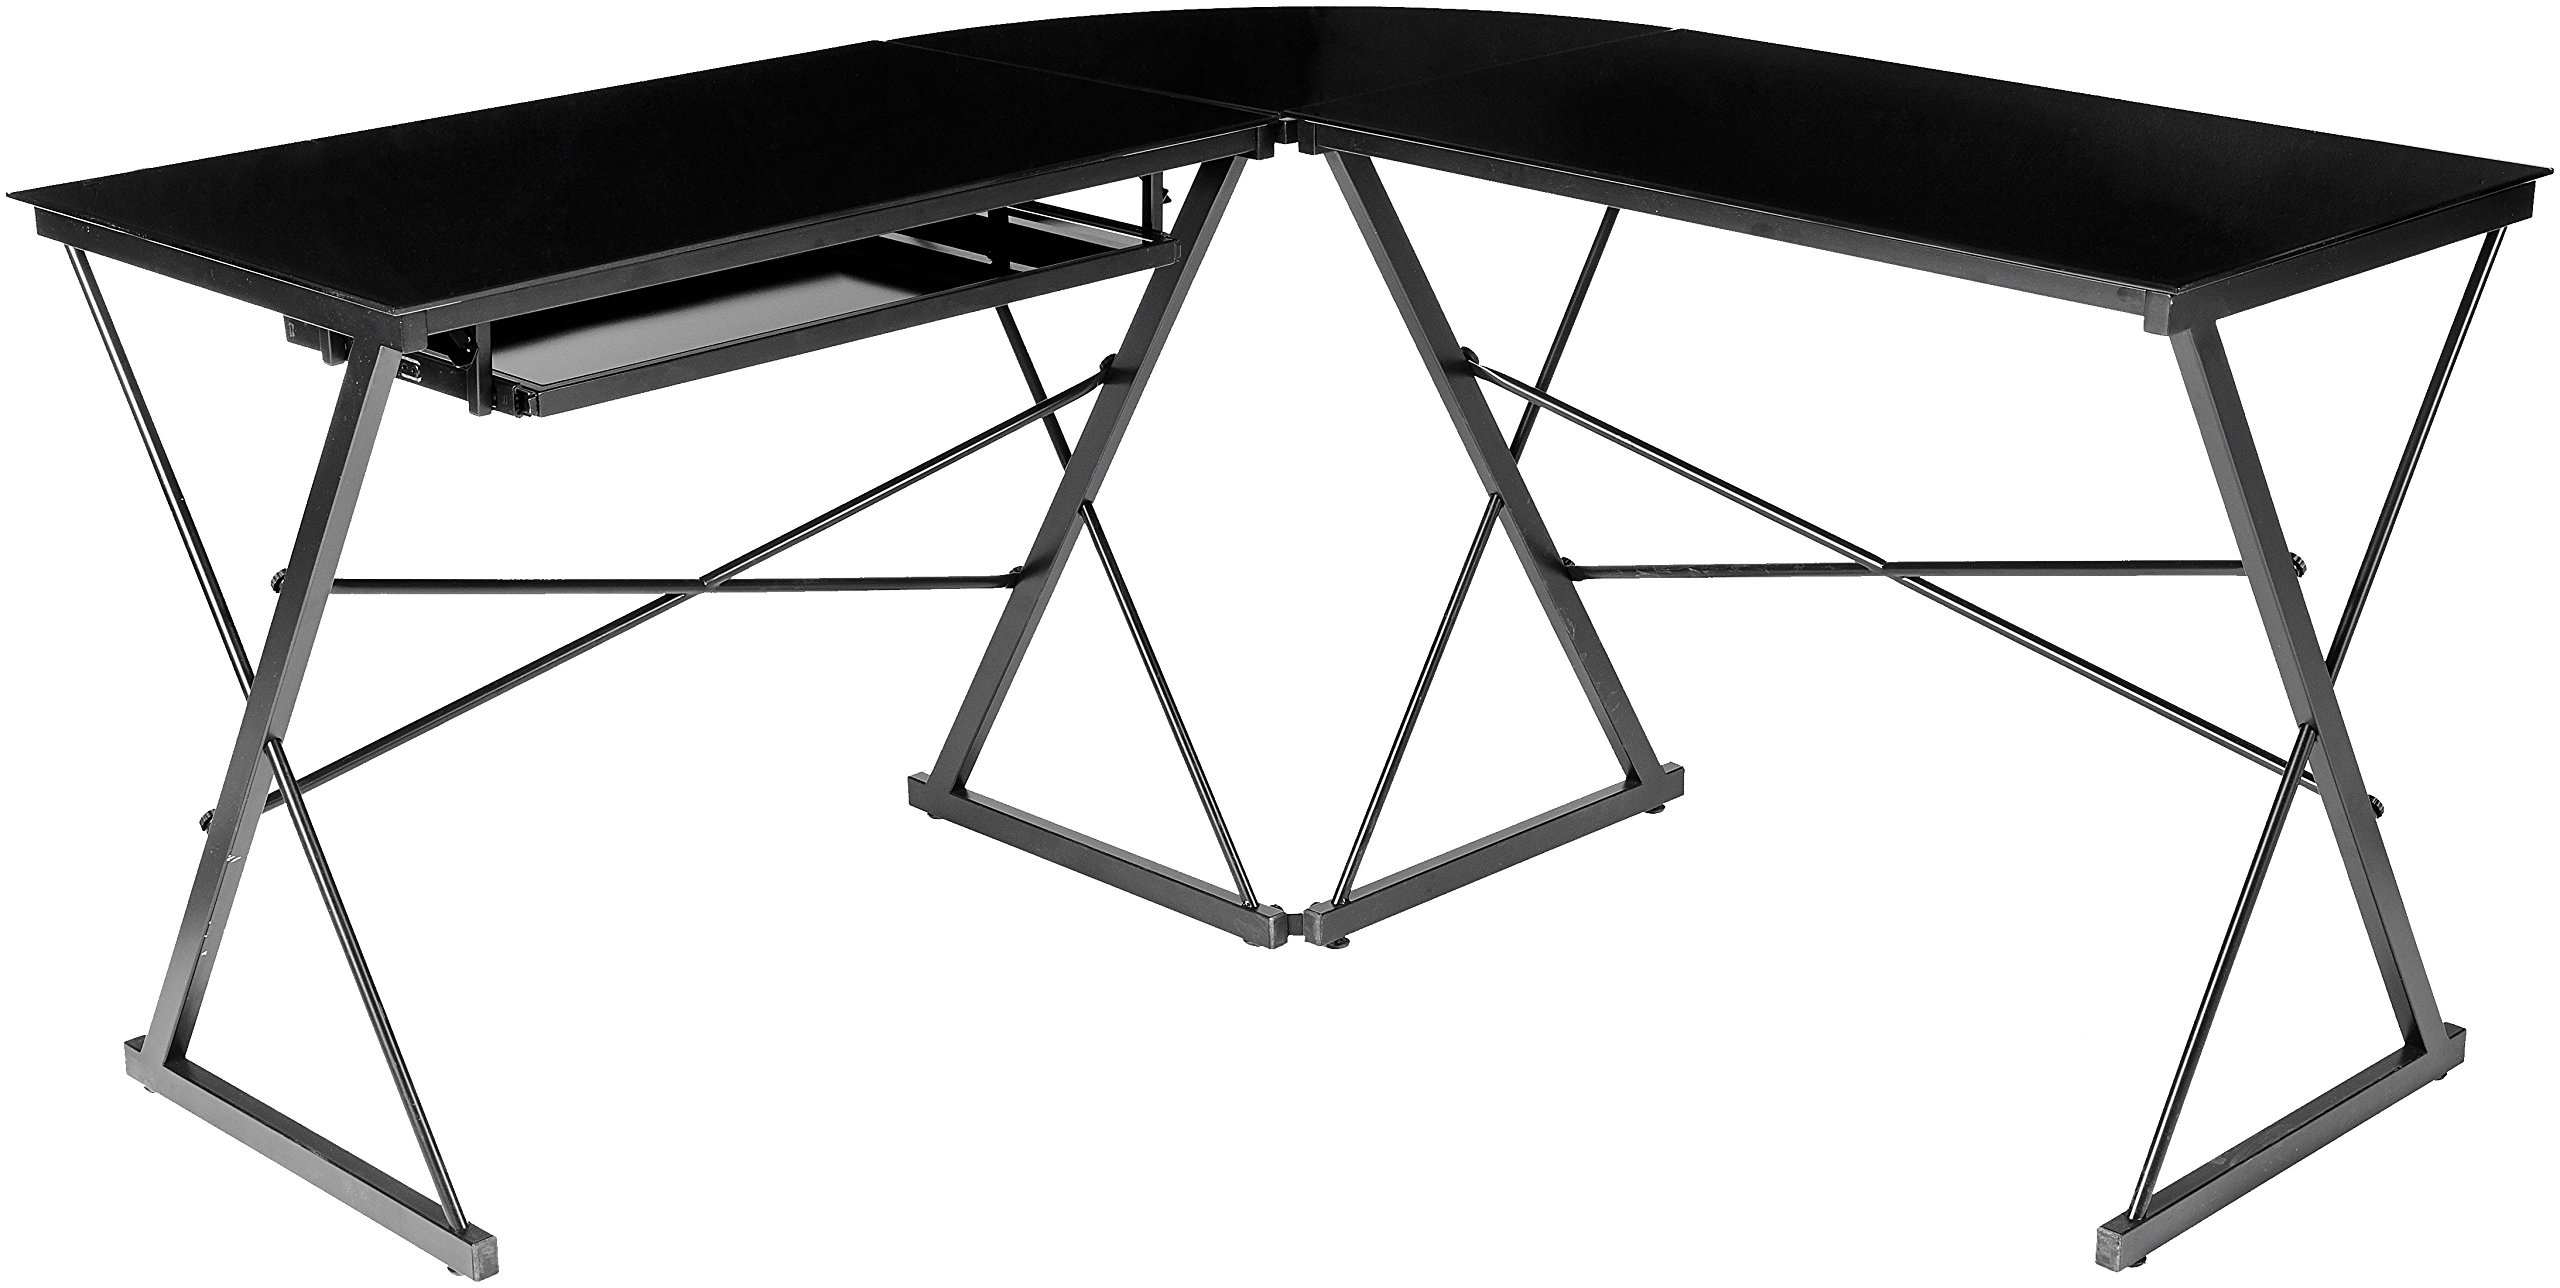 AmazonBasics Three Piece Corner Gaming Computer Desk - Black with Black Glass - 3-piece modular desk with contemporary, minimalist style; can be separated into 2 desks Smooth work surface made of black tempered safety glass (polished and beveled) Includes independent CPU stand and sliding keyboard tray that can be mounted on either side - writing-desks, living-room-furniture, living-room - 815ZHqiP8xL -